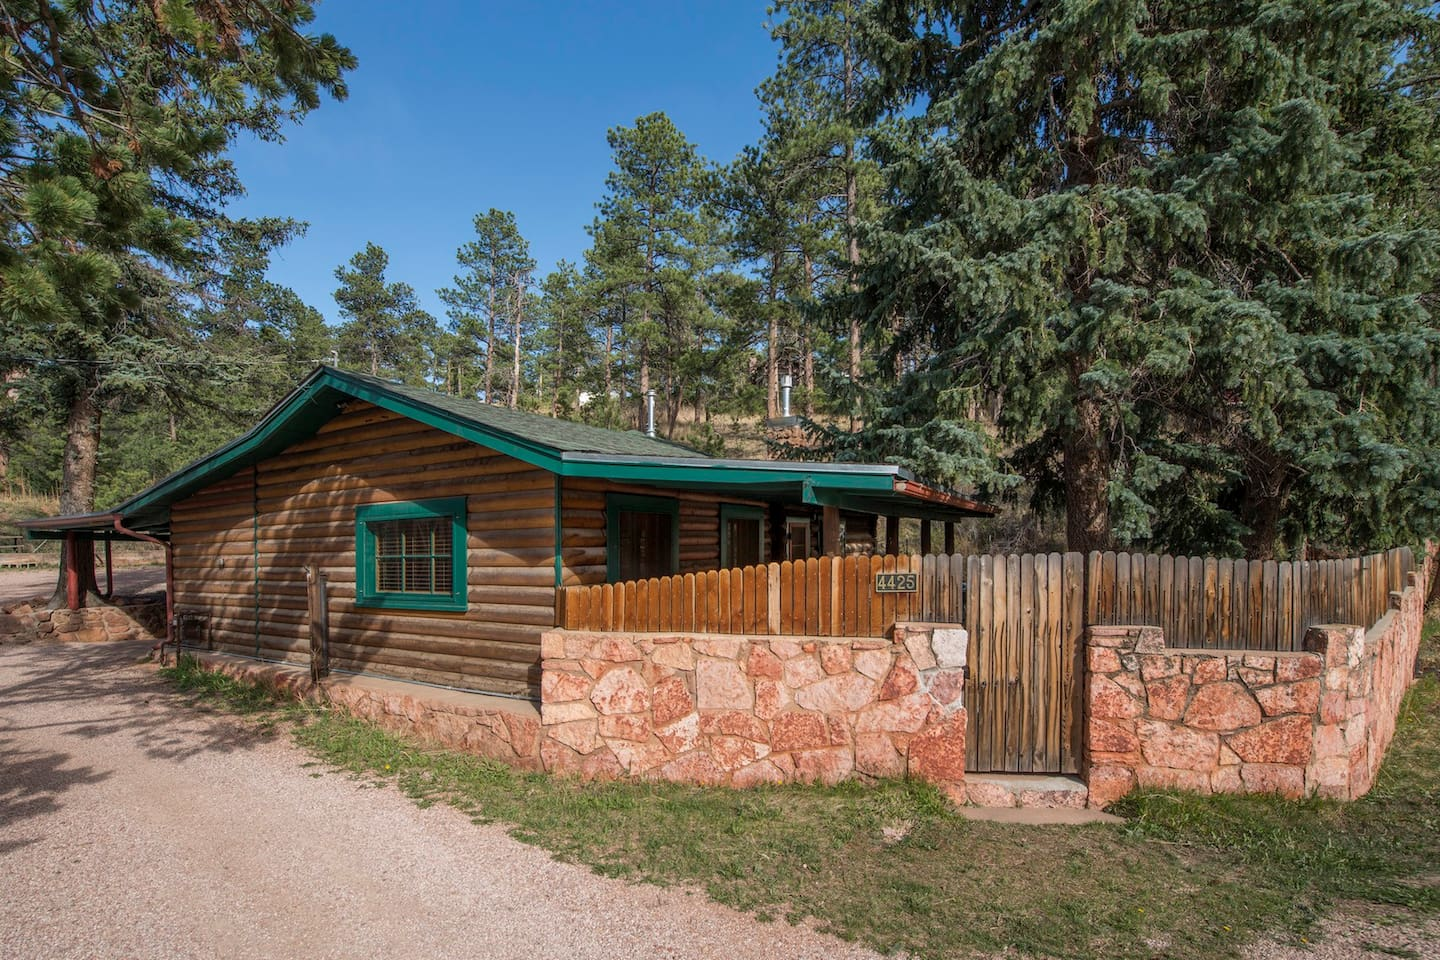 rental colorado show rent bear vacation lodge low for az pinetop cabins rentals black arizona cabin